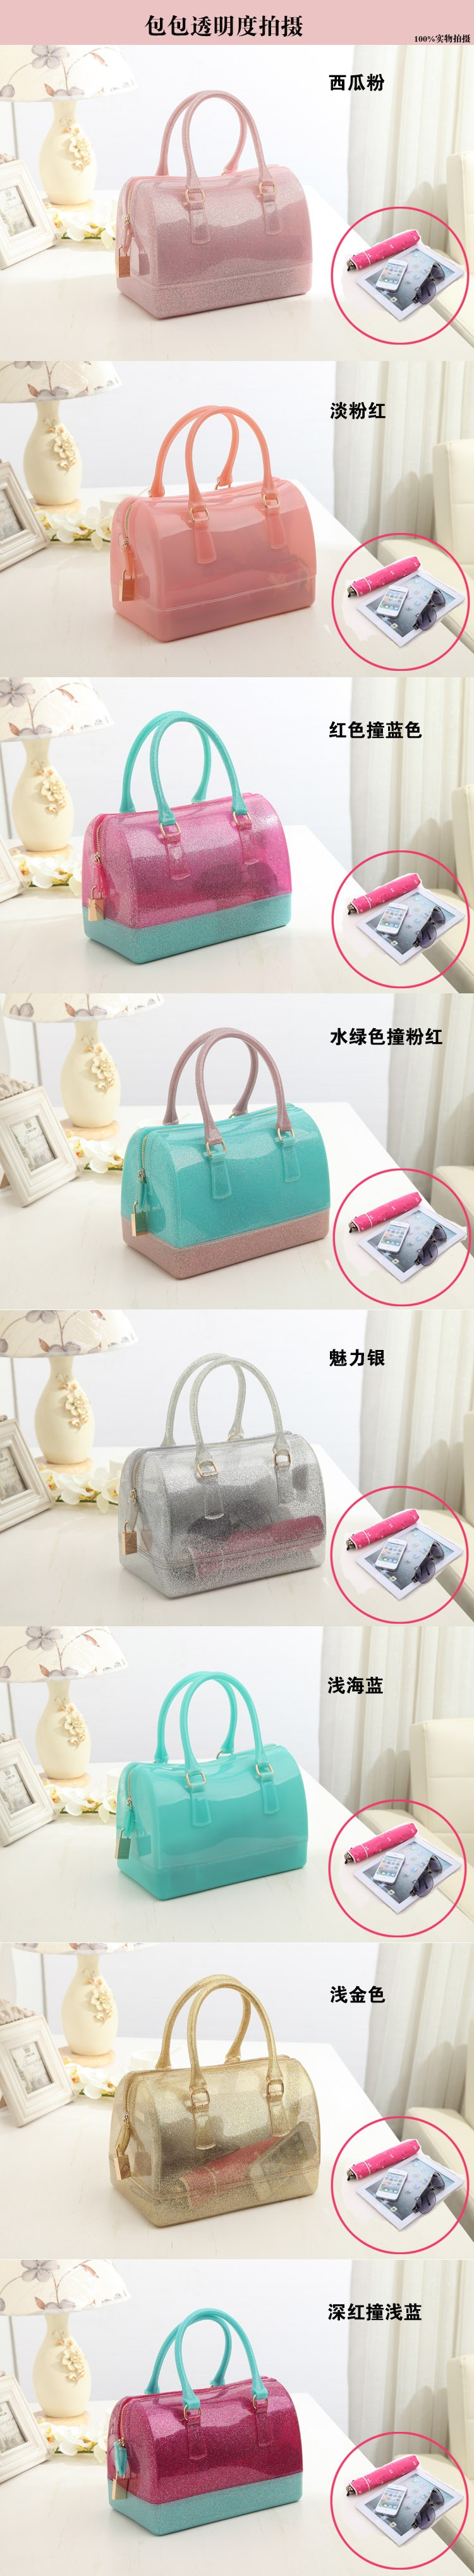 2016 new fur Jelly women messenger bags feminine fashion leisure crystal handbag crossbody bag makeup bag